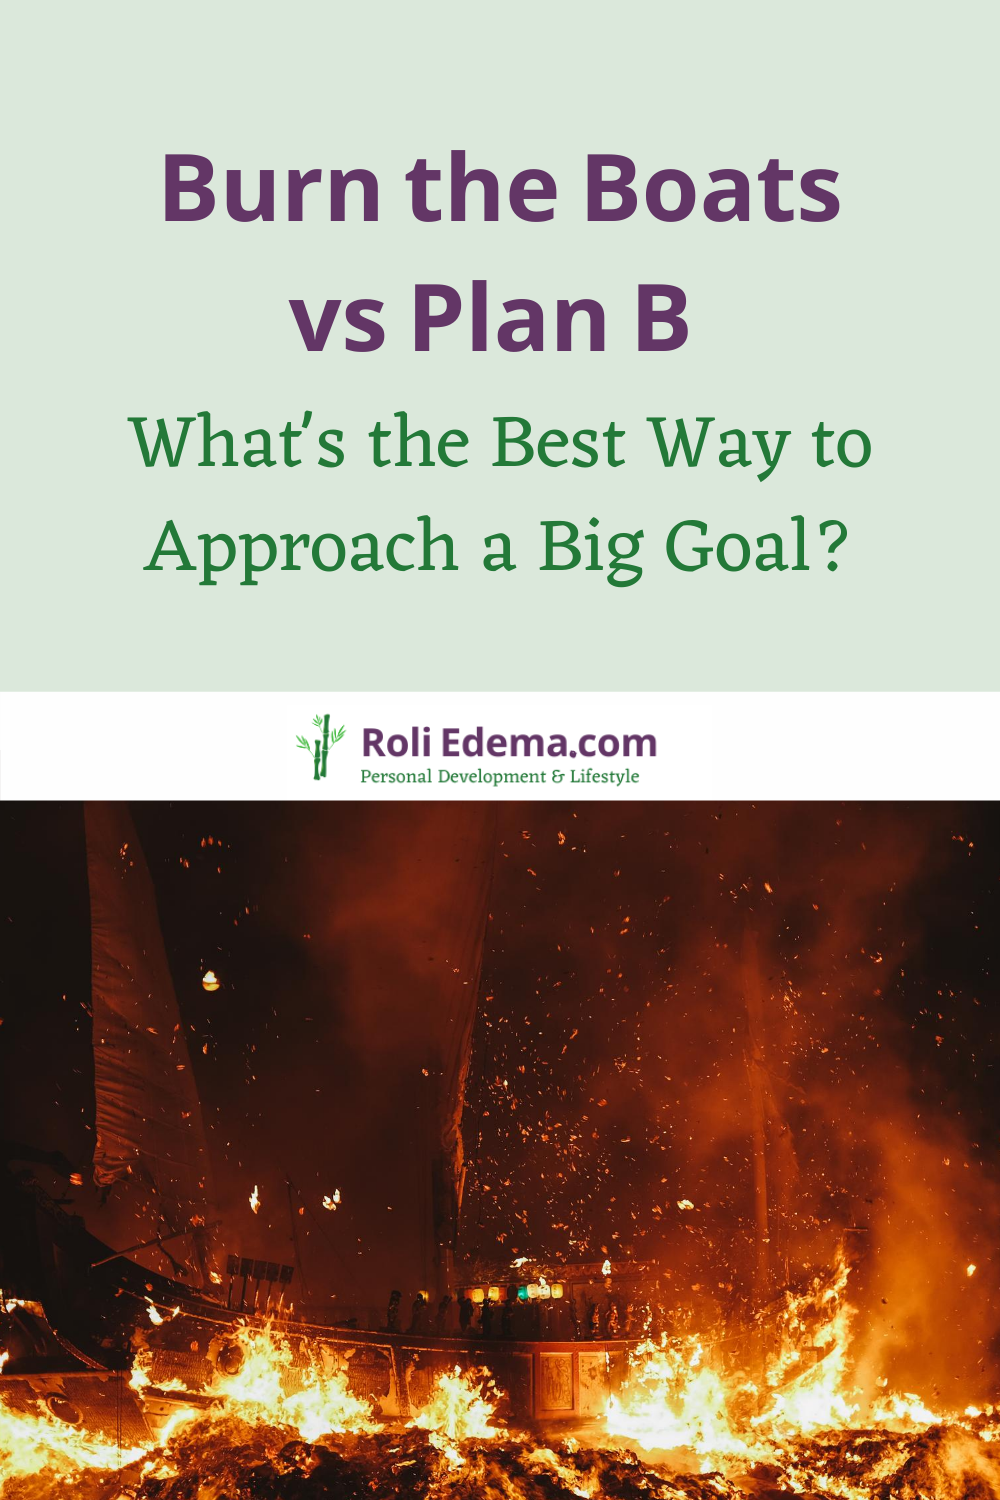 Burn the Boats vs Plan B - What's the Best Way to Approach a Big Goal?